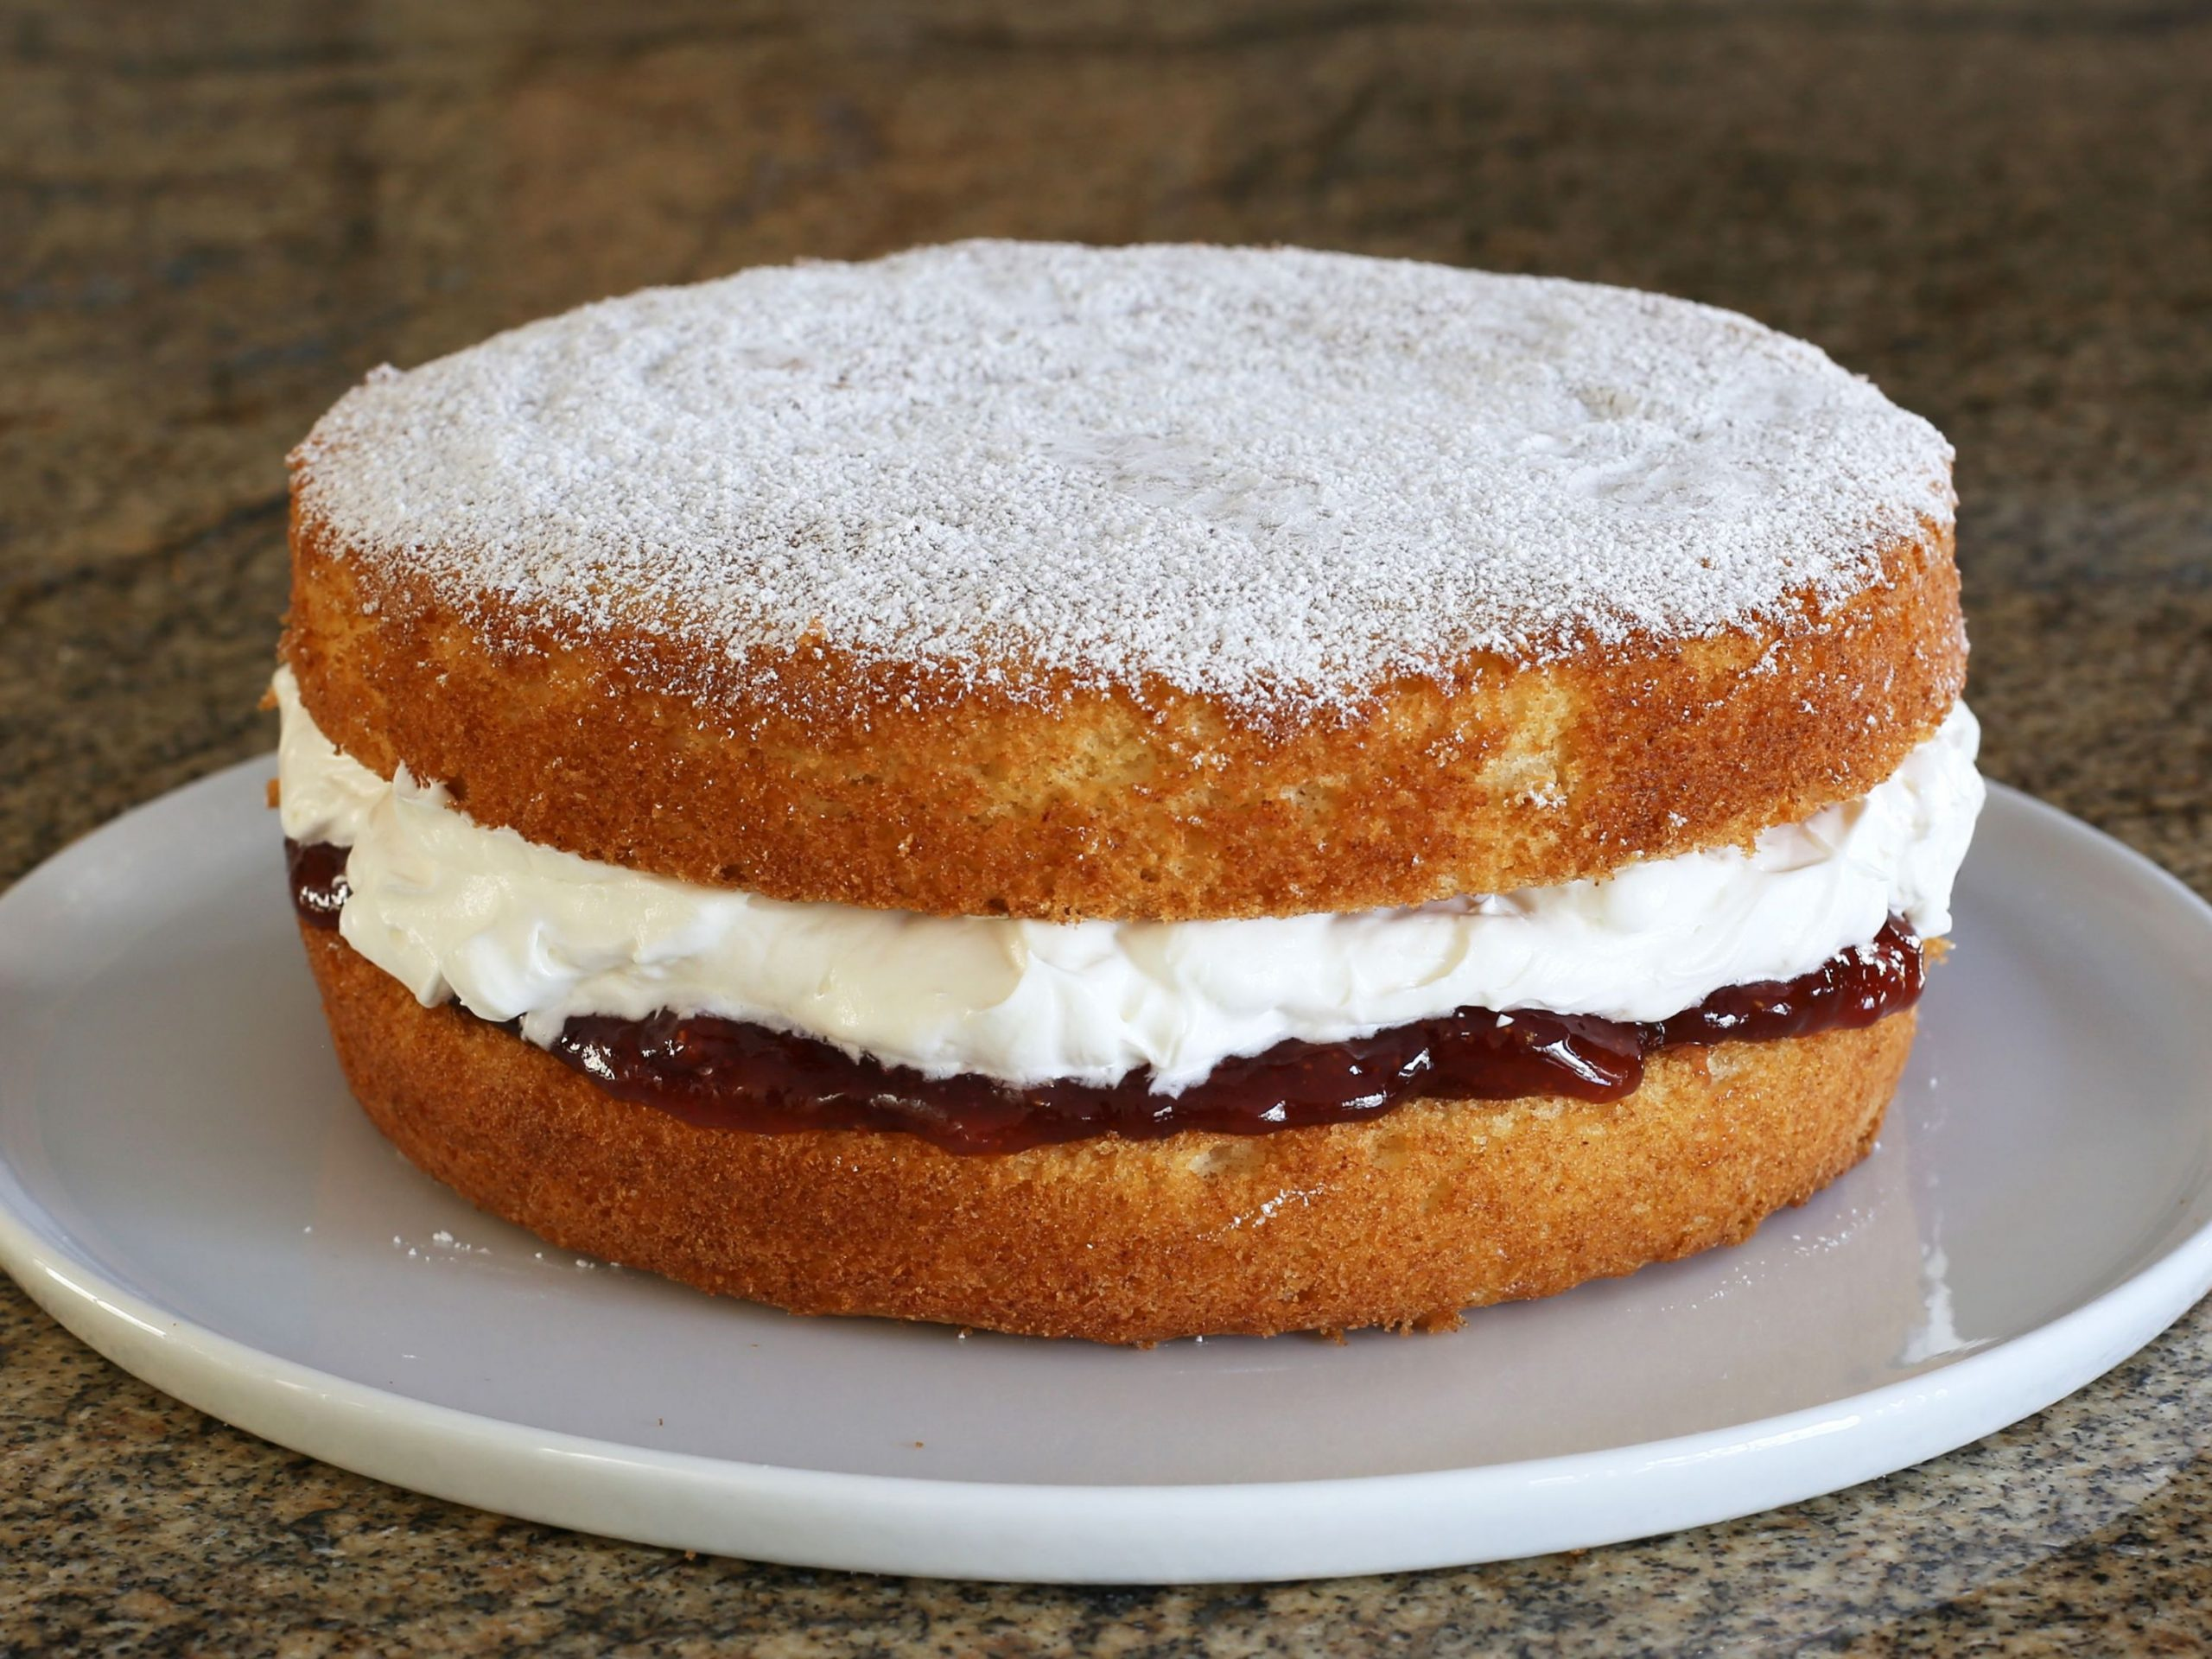 Queen Cake With Whipped Cream and Jam Filling